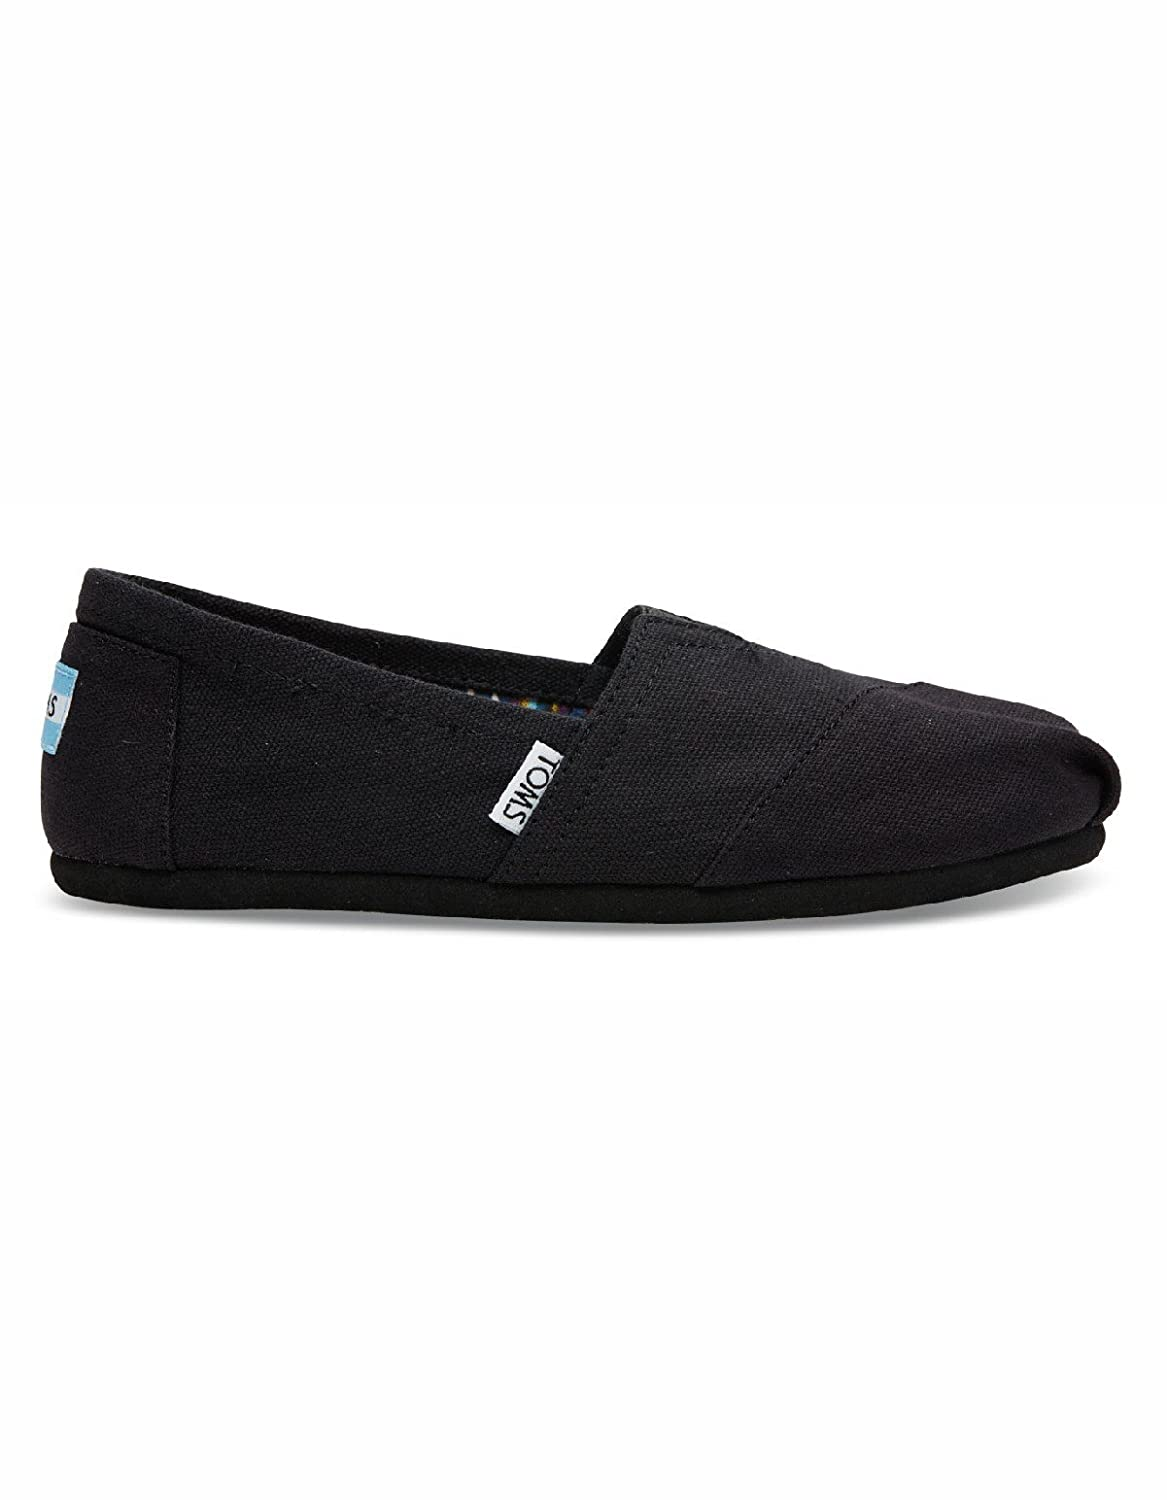 1bf22959dc839 TOMS Youth/Tiny Classics 2.0 Slip-On Shoes